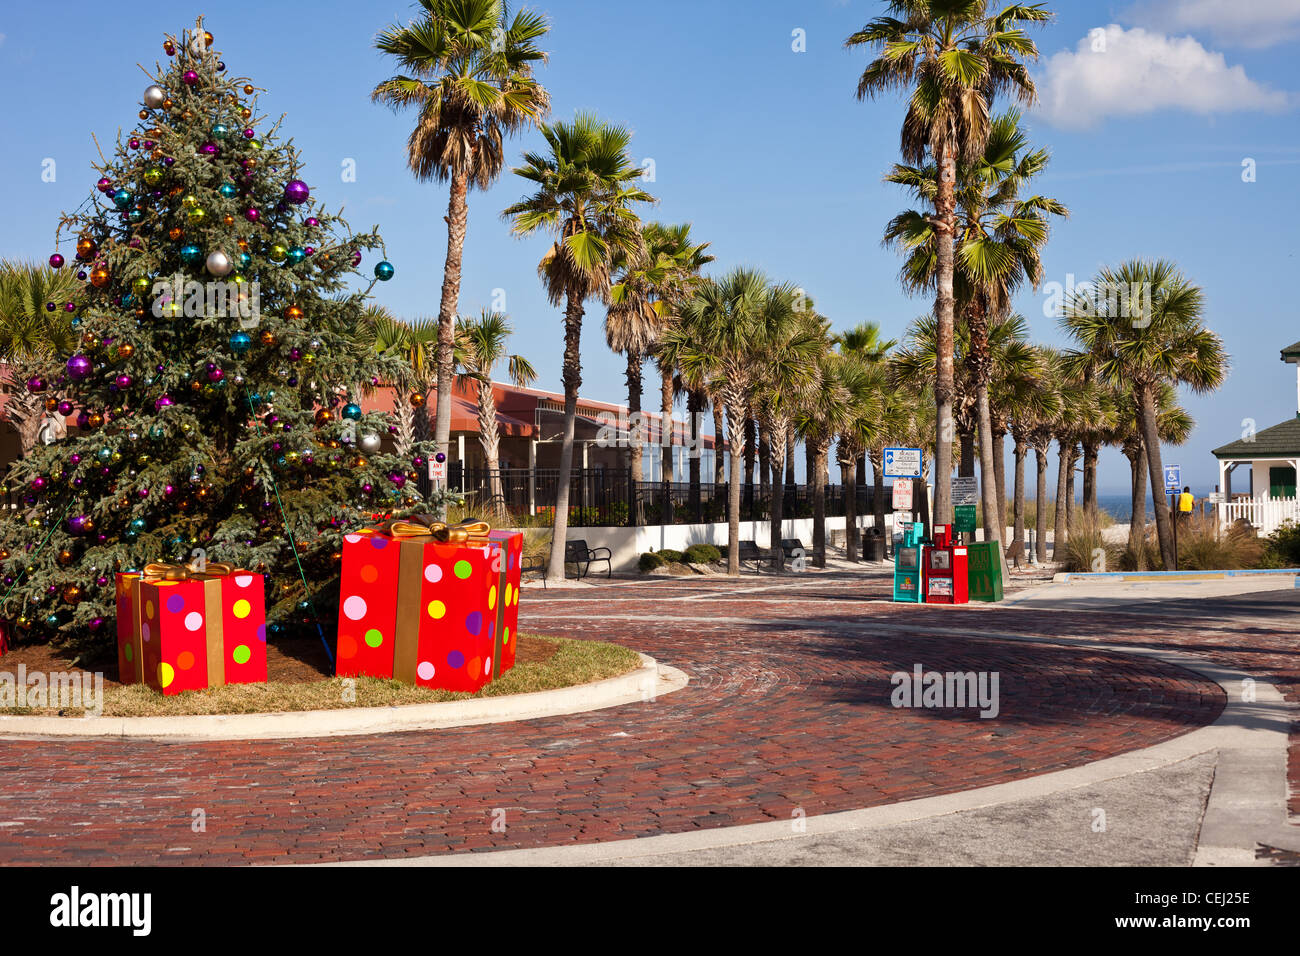 Cost Of Christmas Trees 2020 In Vero Beach Fl Christmas tree at vero beach florida Stock Photo   Alamy